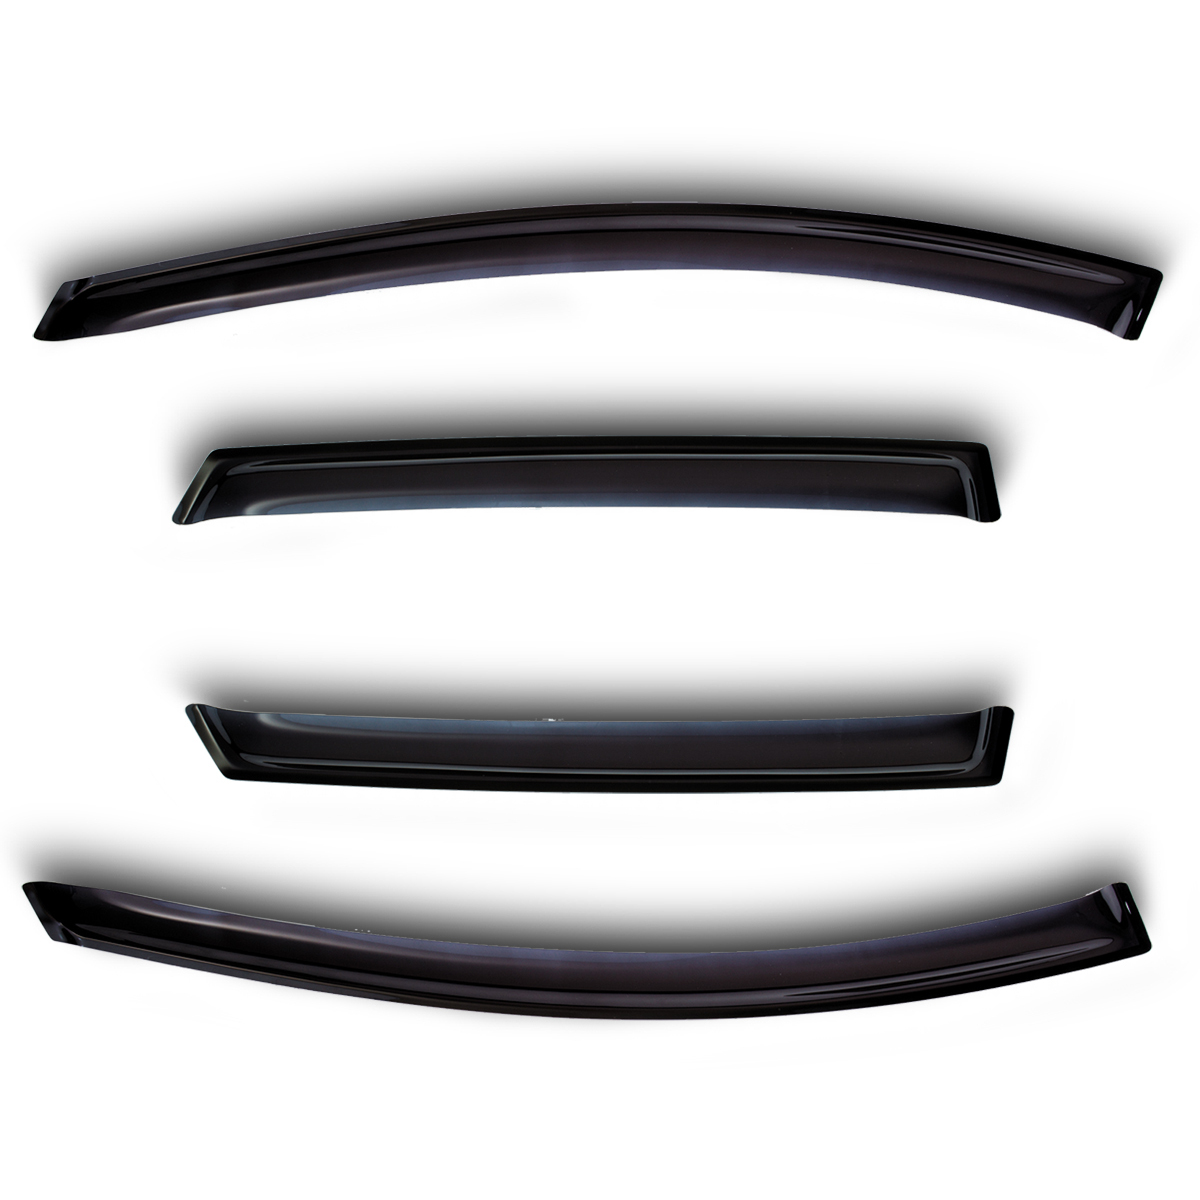 Window deflectors 4 door Opel Astra SD 2004  NLD. sopasts0432 (Opel) Awnings & Shelters     - title=